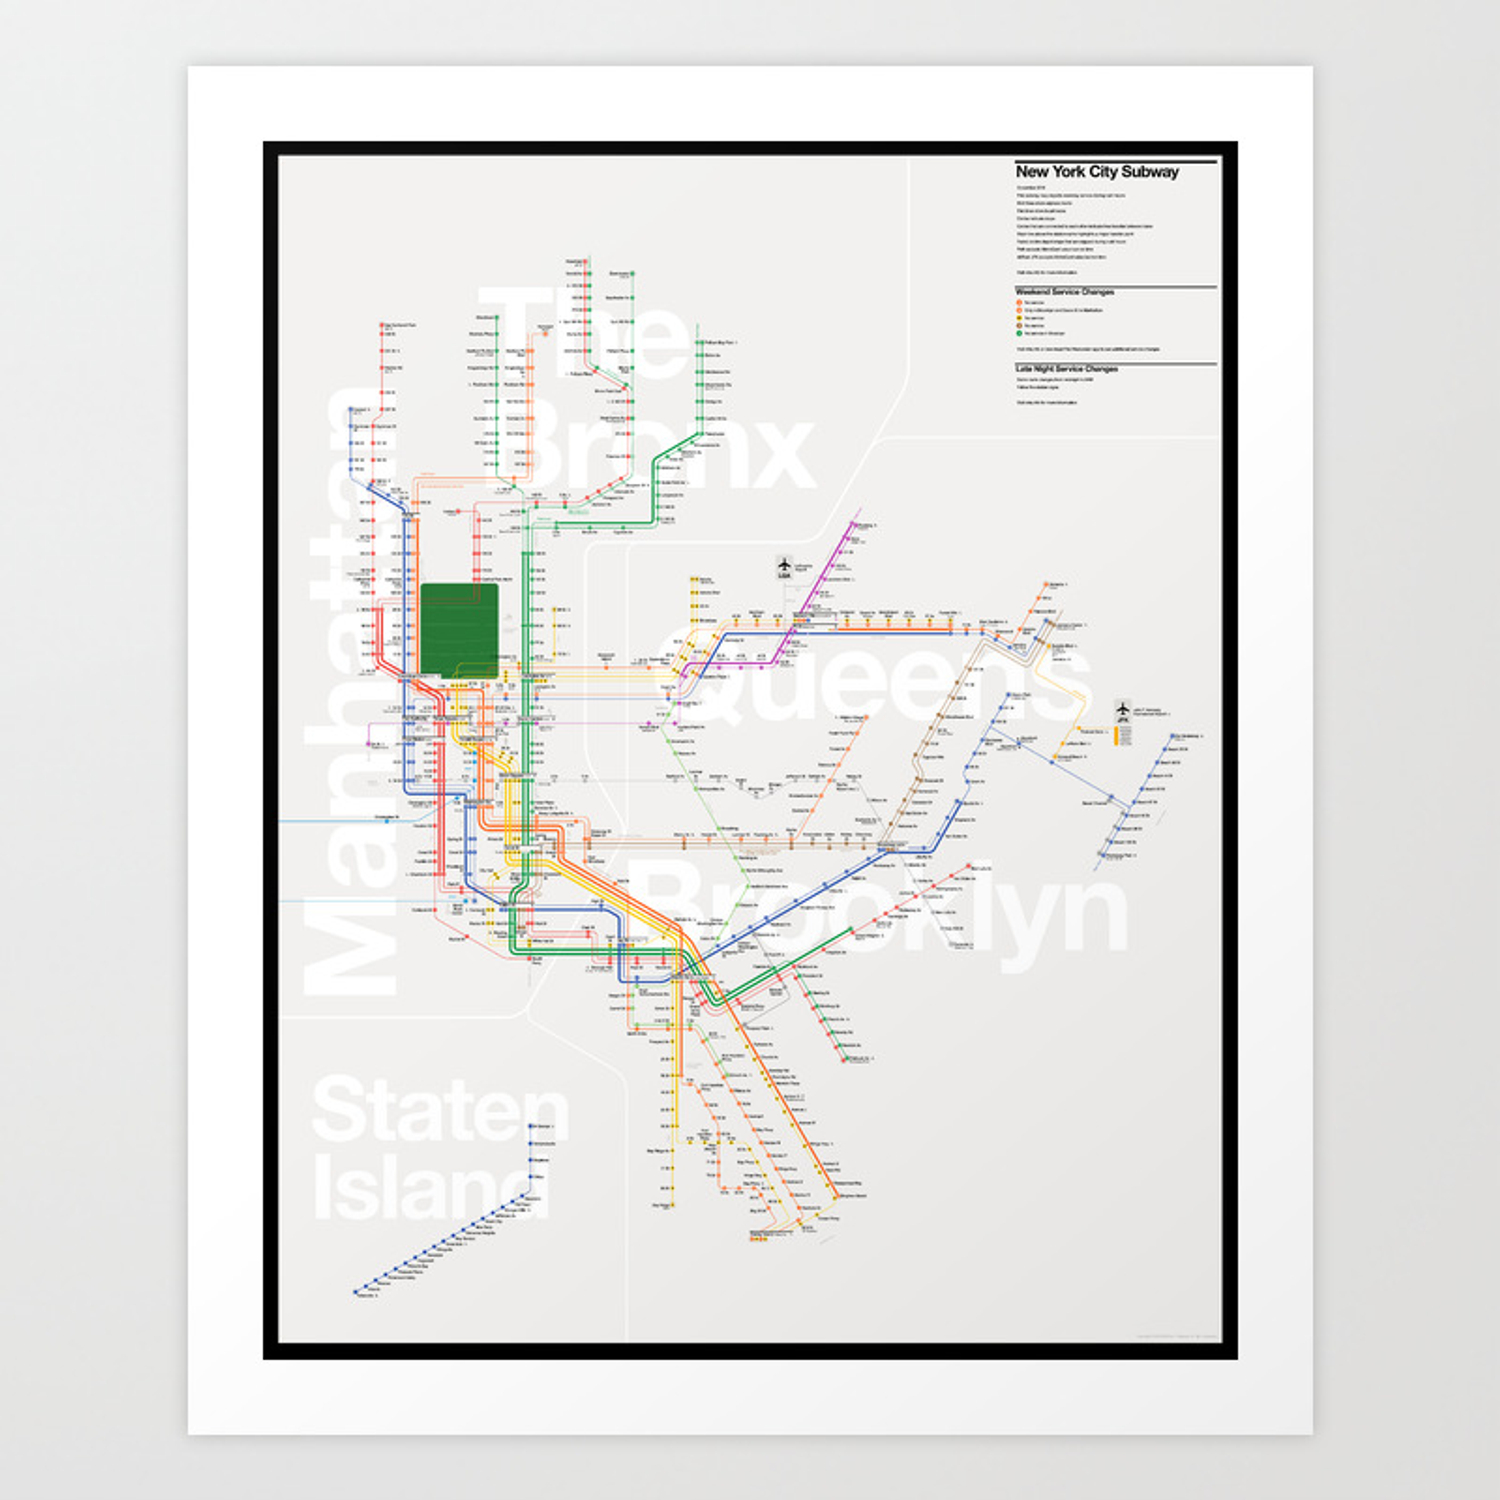 New York Subway Map To Print.New York City Subway Map Art Print